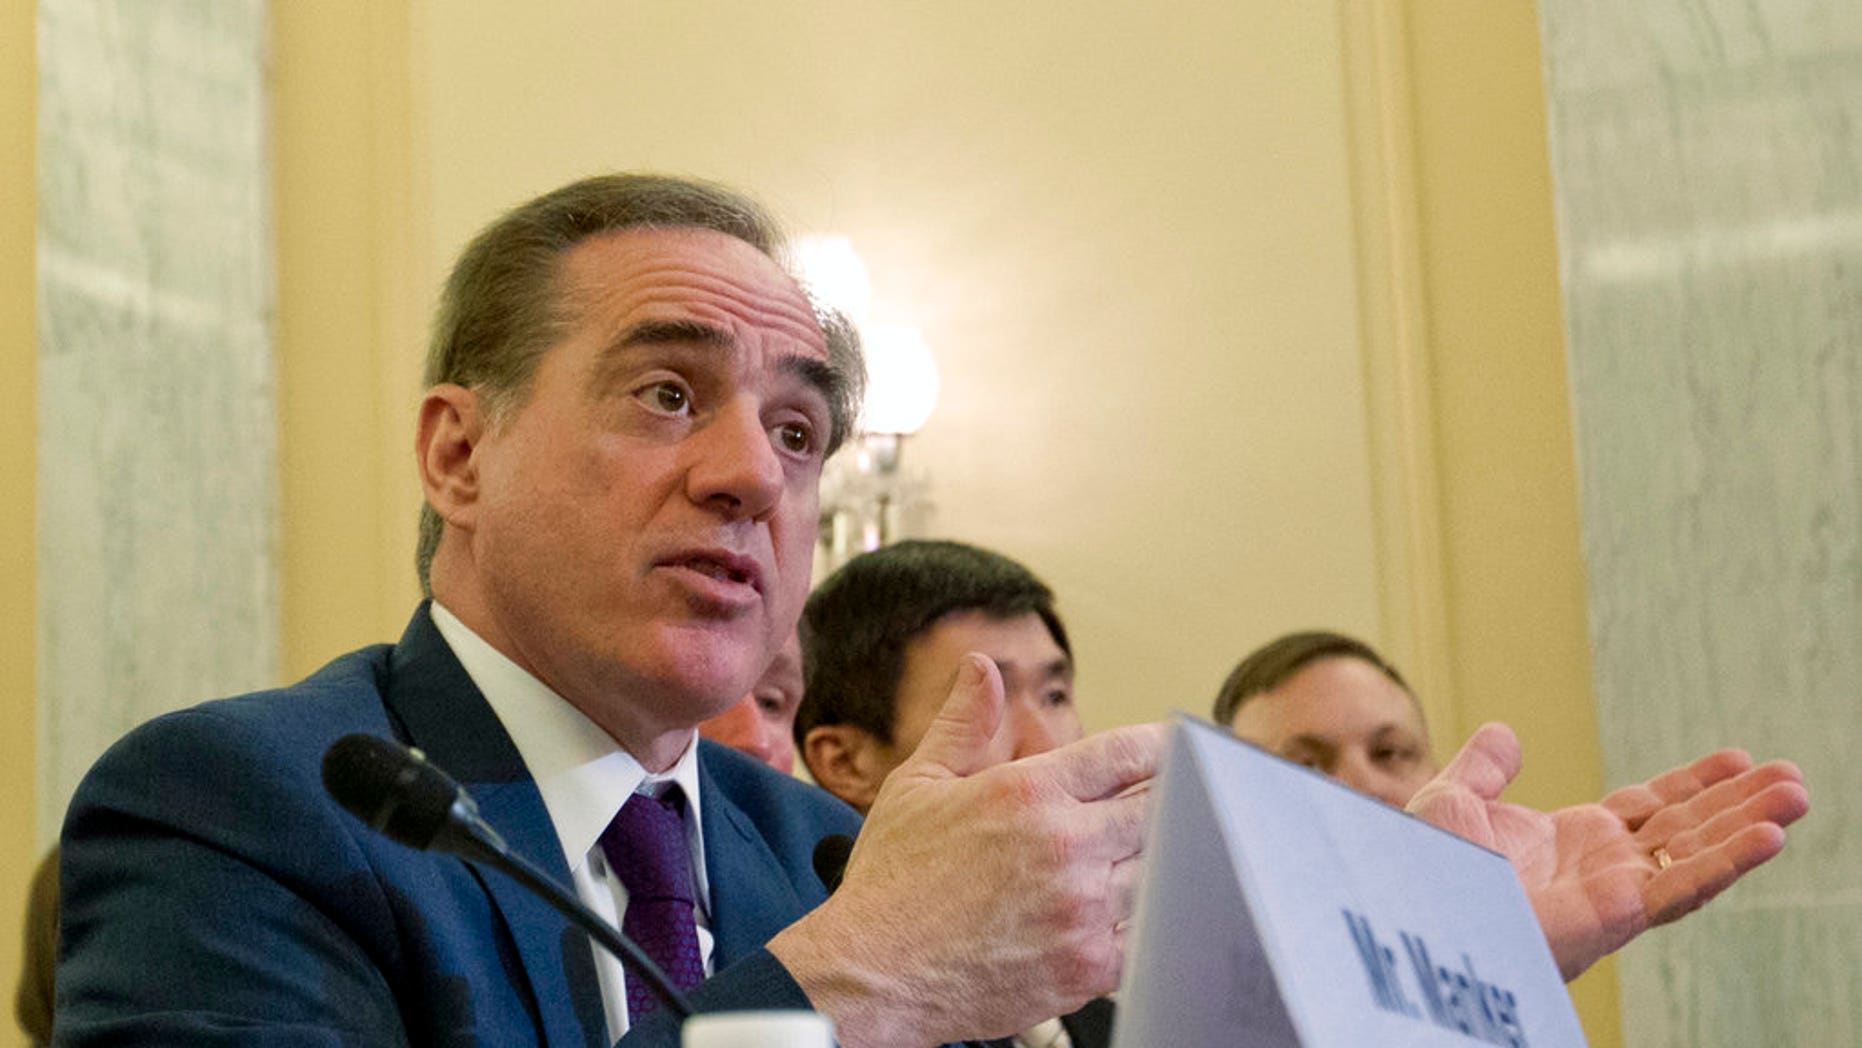 Former VA Secretary David Shulkin, pictured, was accused of neglecting cries for help from officials at a VA hospital in Manchester, NH.